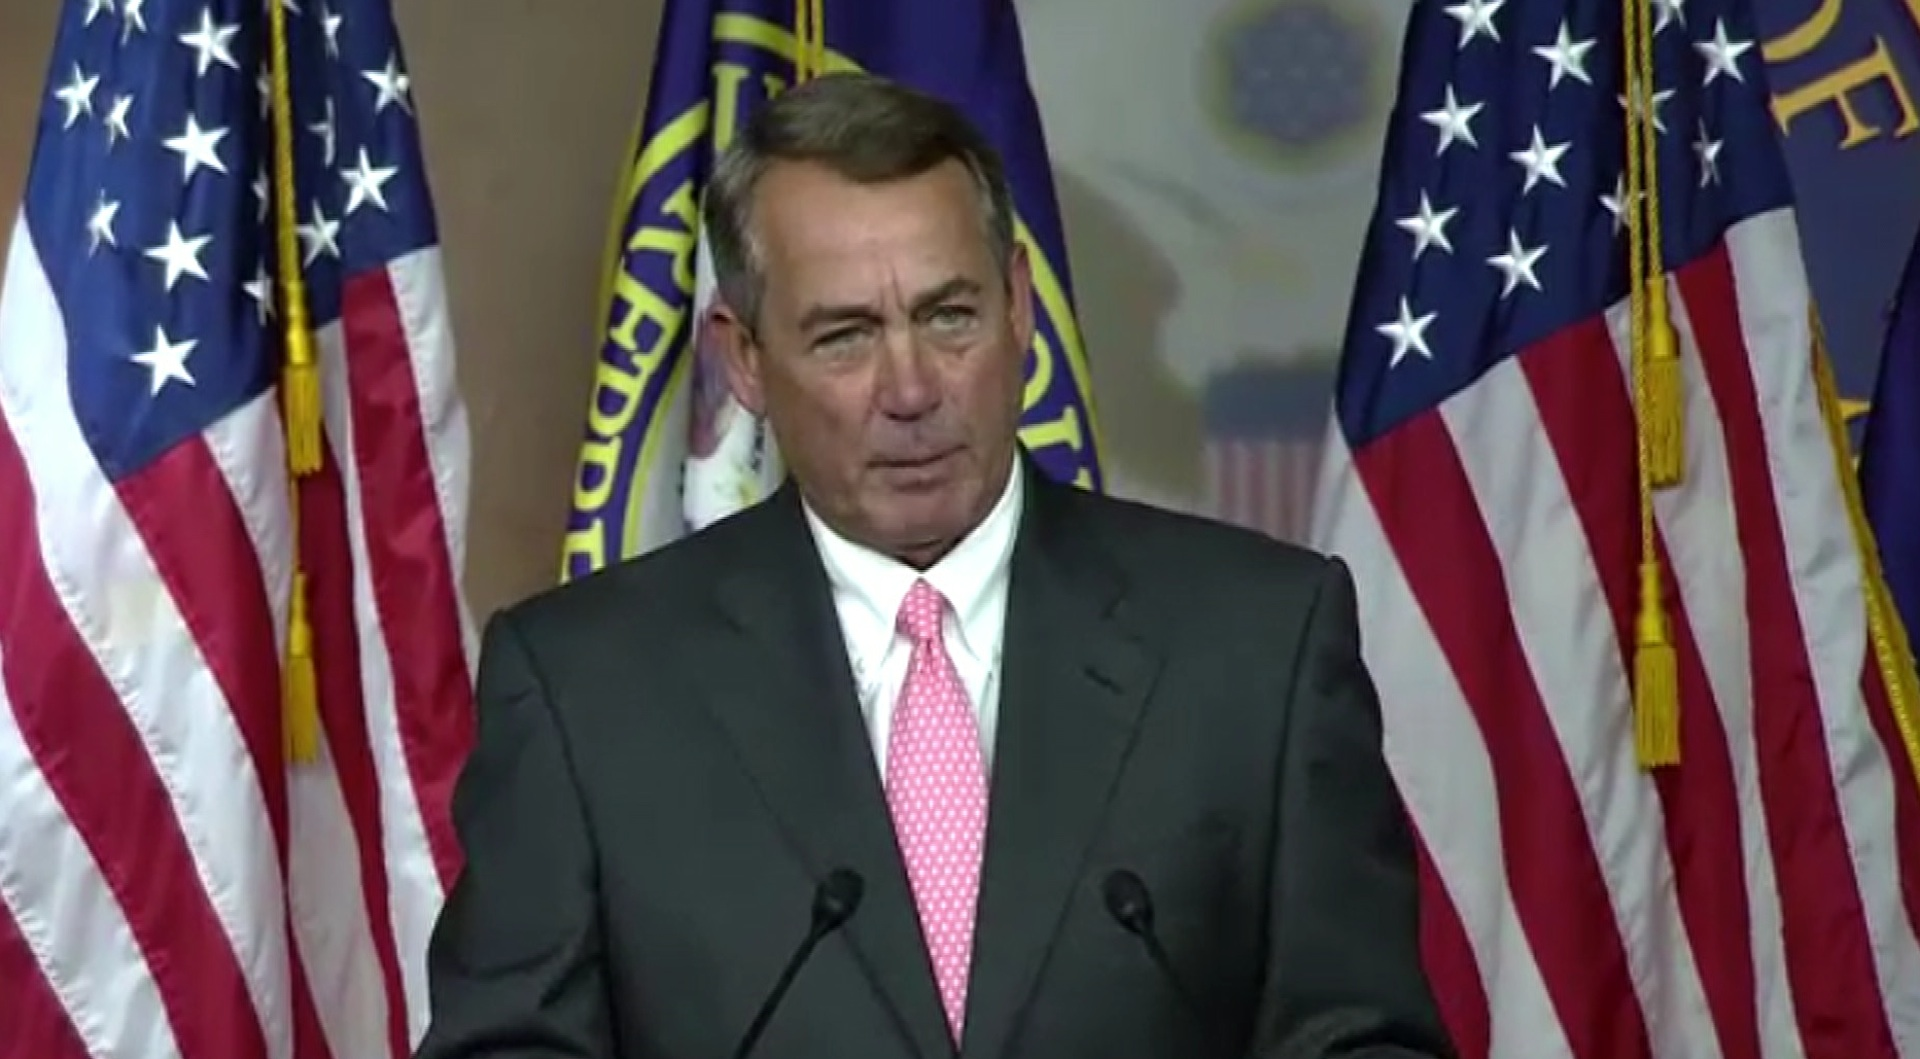 John Boehner just sacrificed his career for the good of the Republican Party